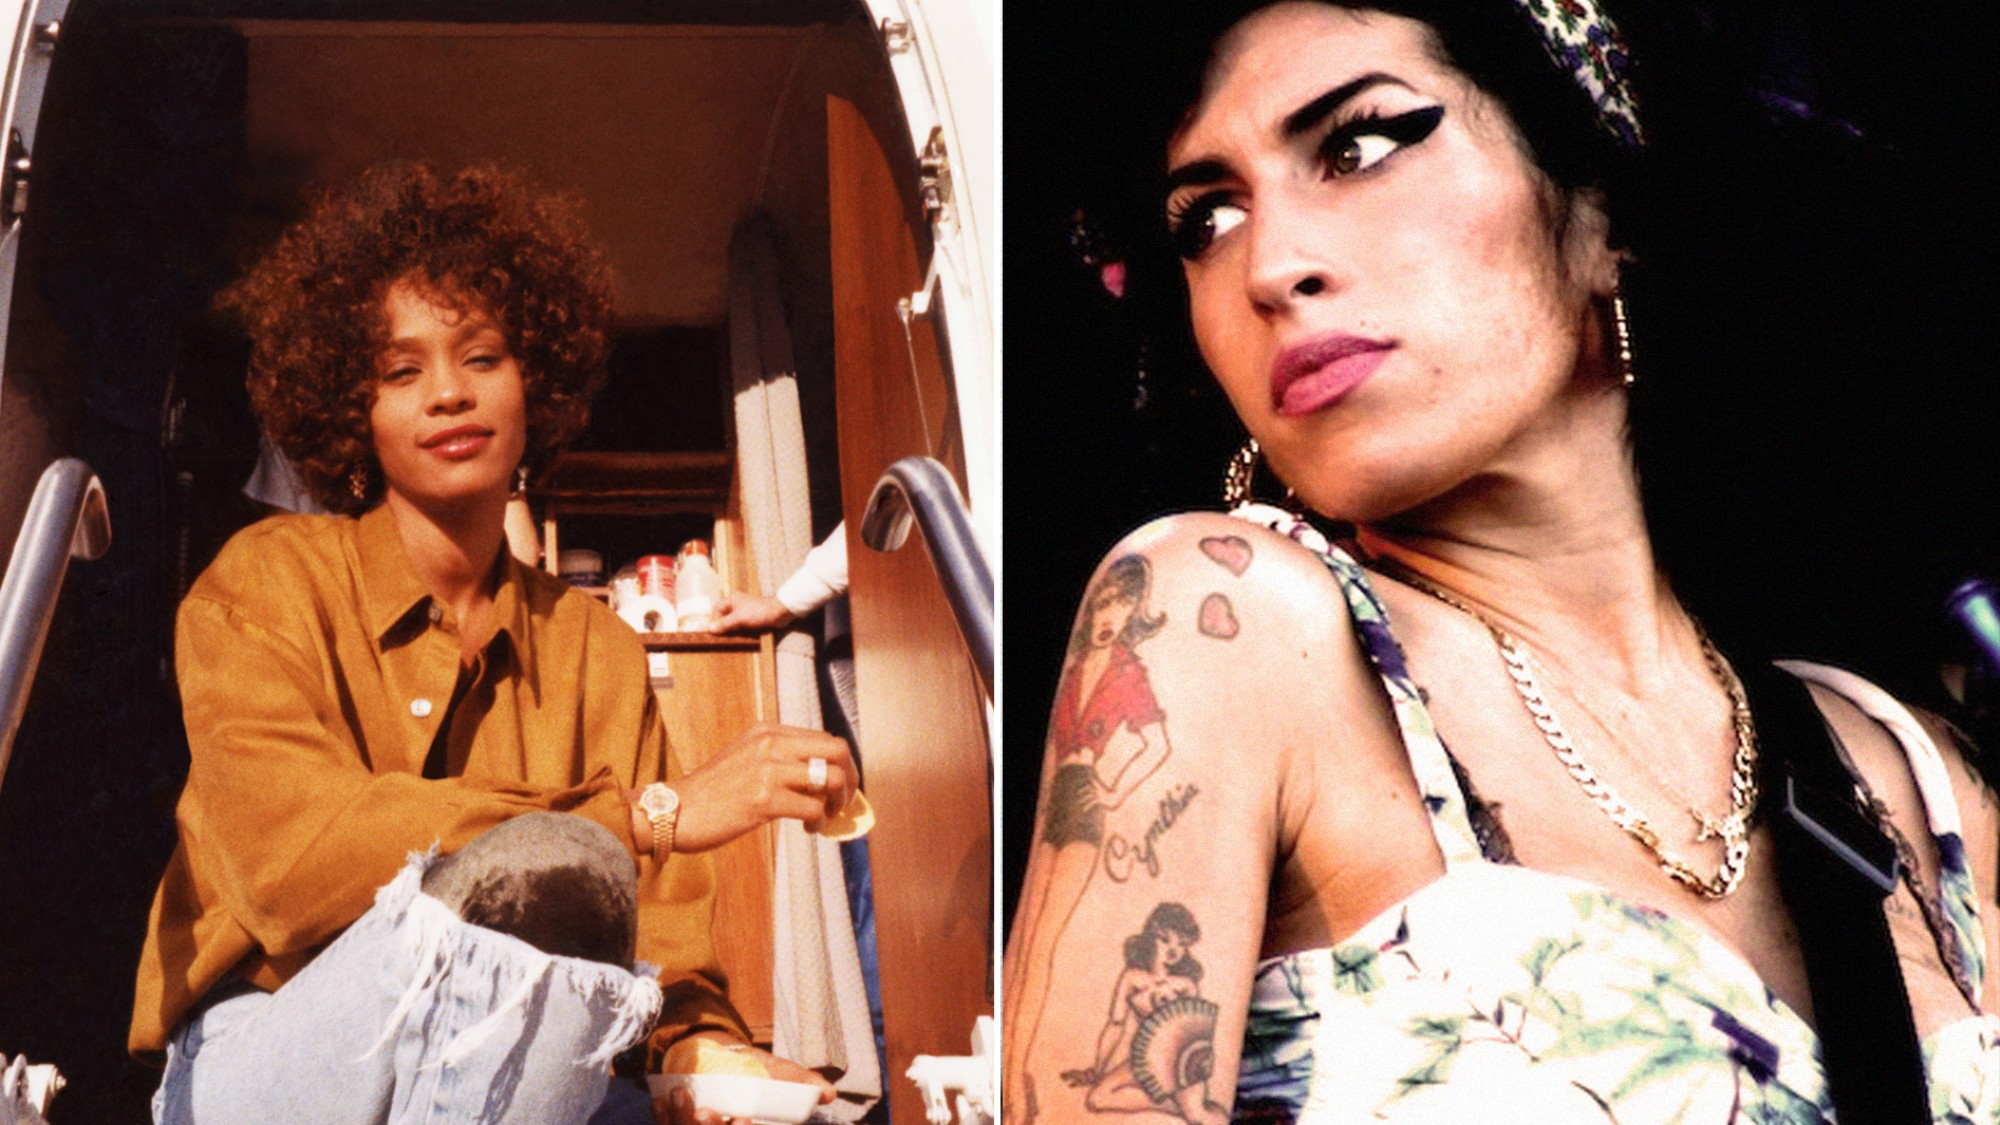 Amy Winehouse Leaked Photos how we kill our trainwreck celebrities - vice